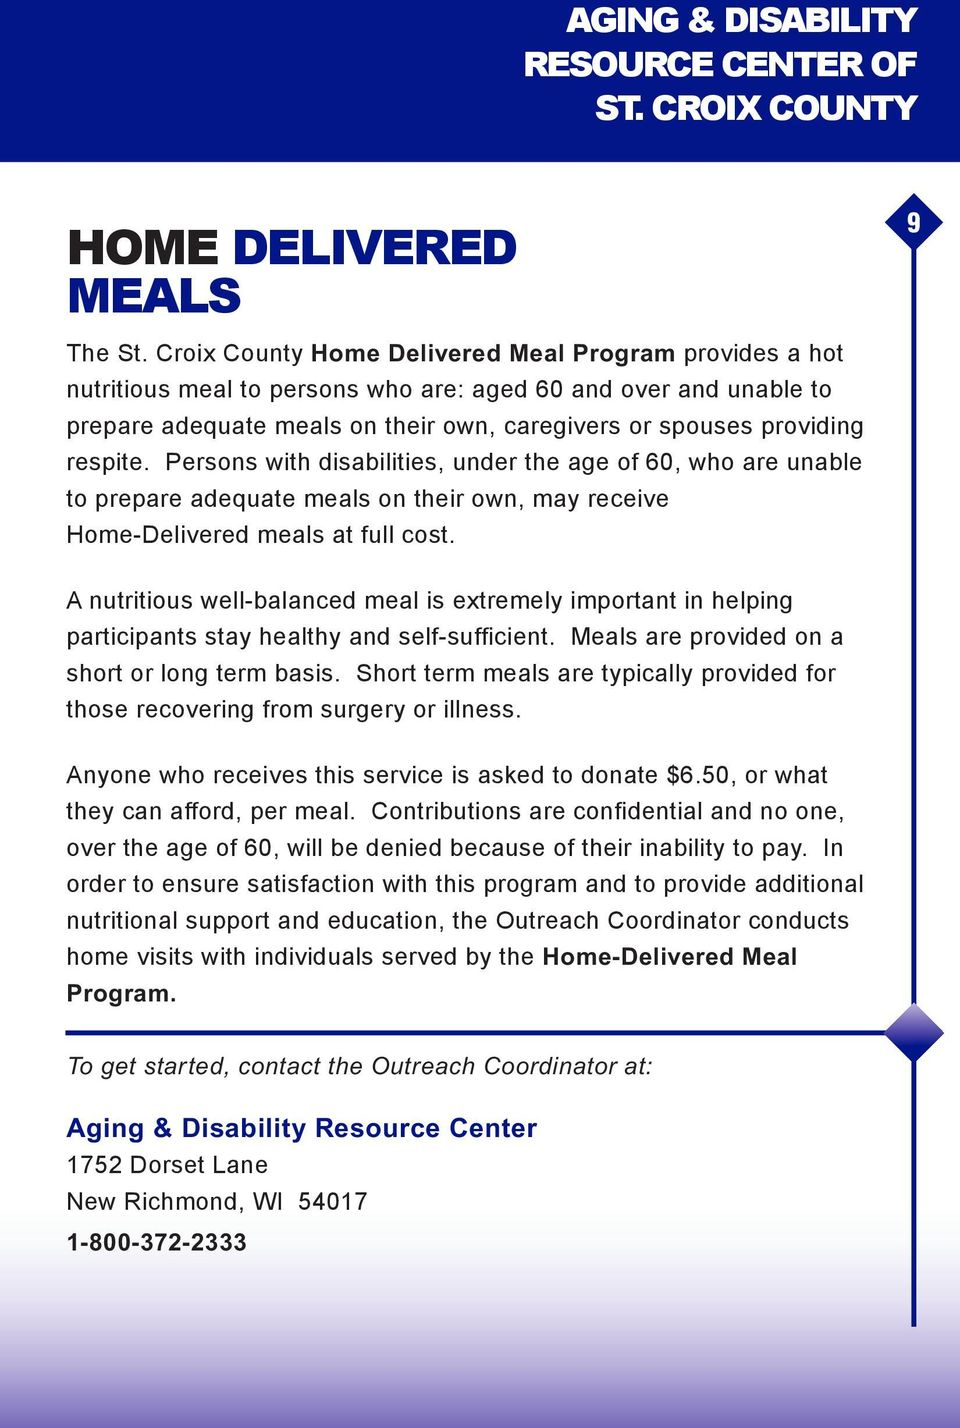 Persons with disabilities, under the age of 60, who are unable to prepare adequate meals on their own, may receive Home-Delivered meals at full cost.